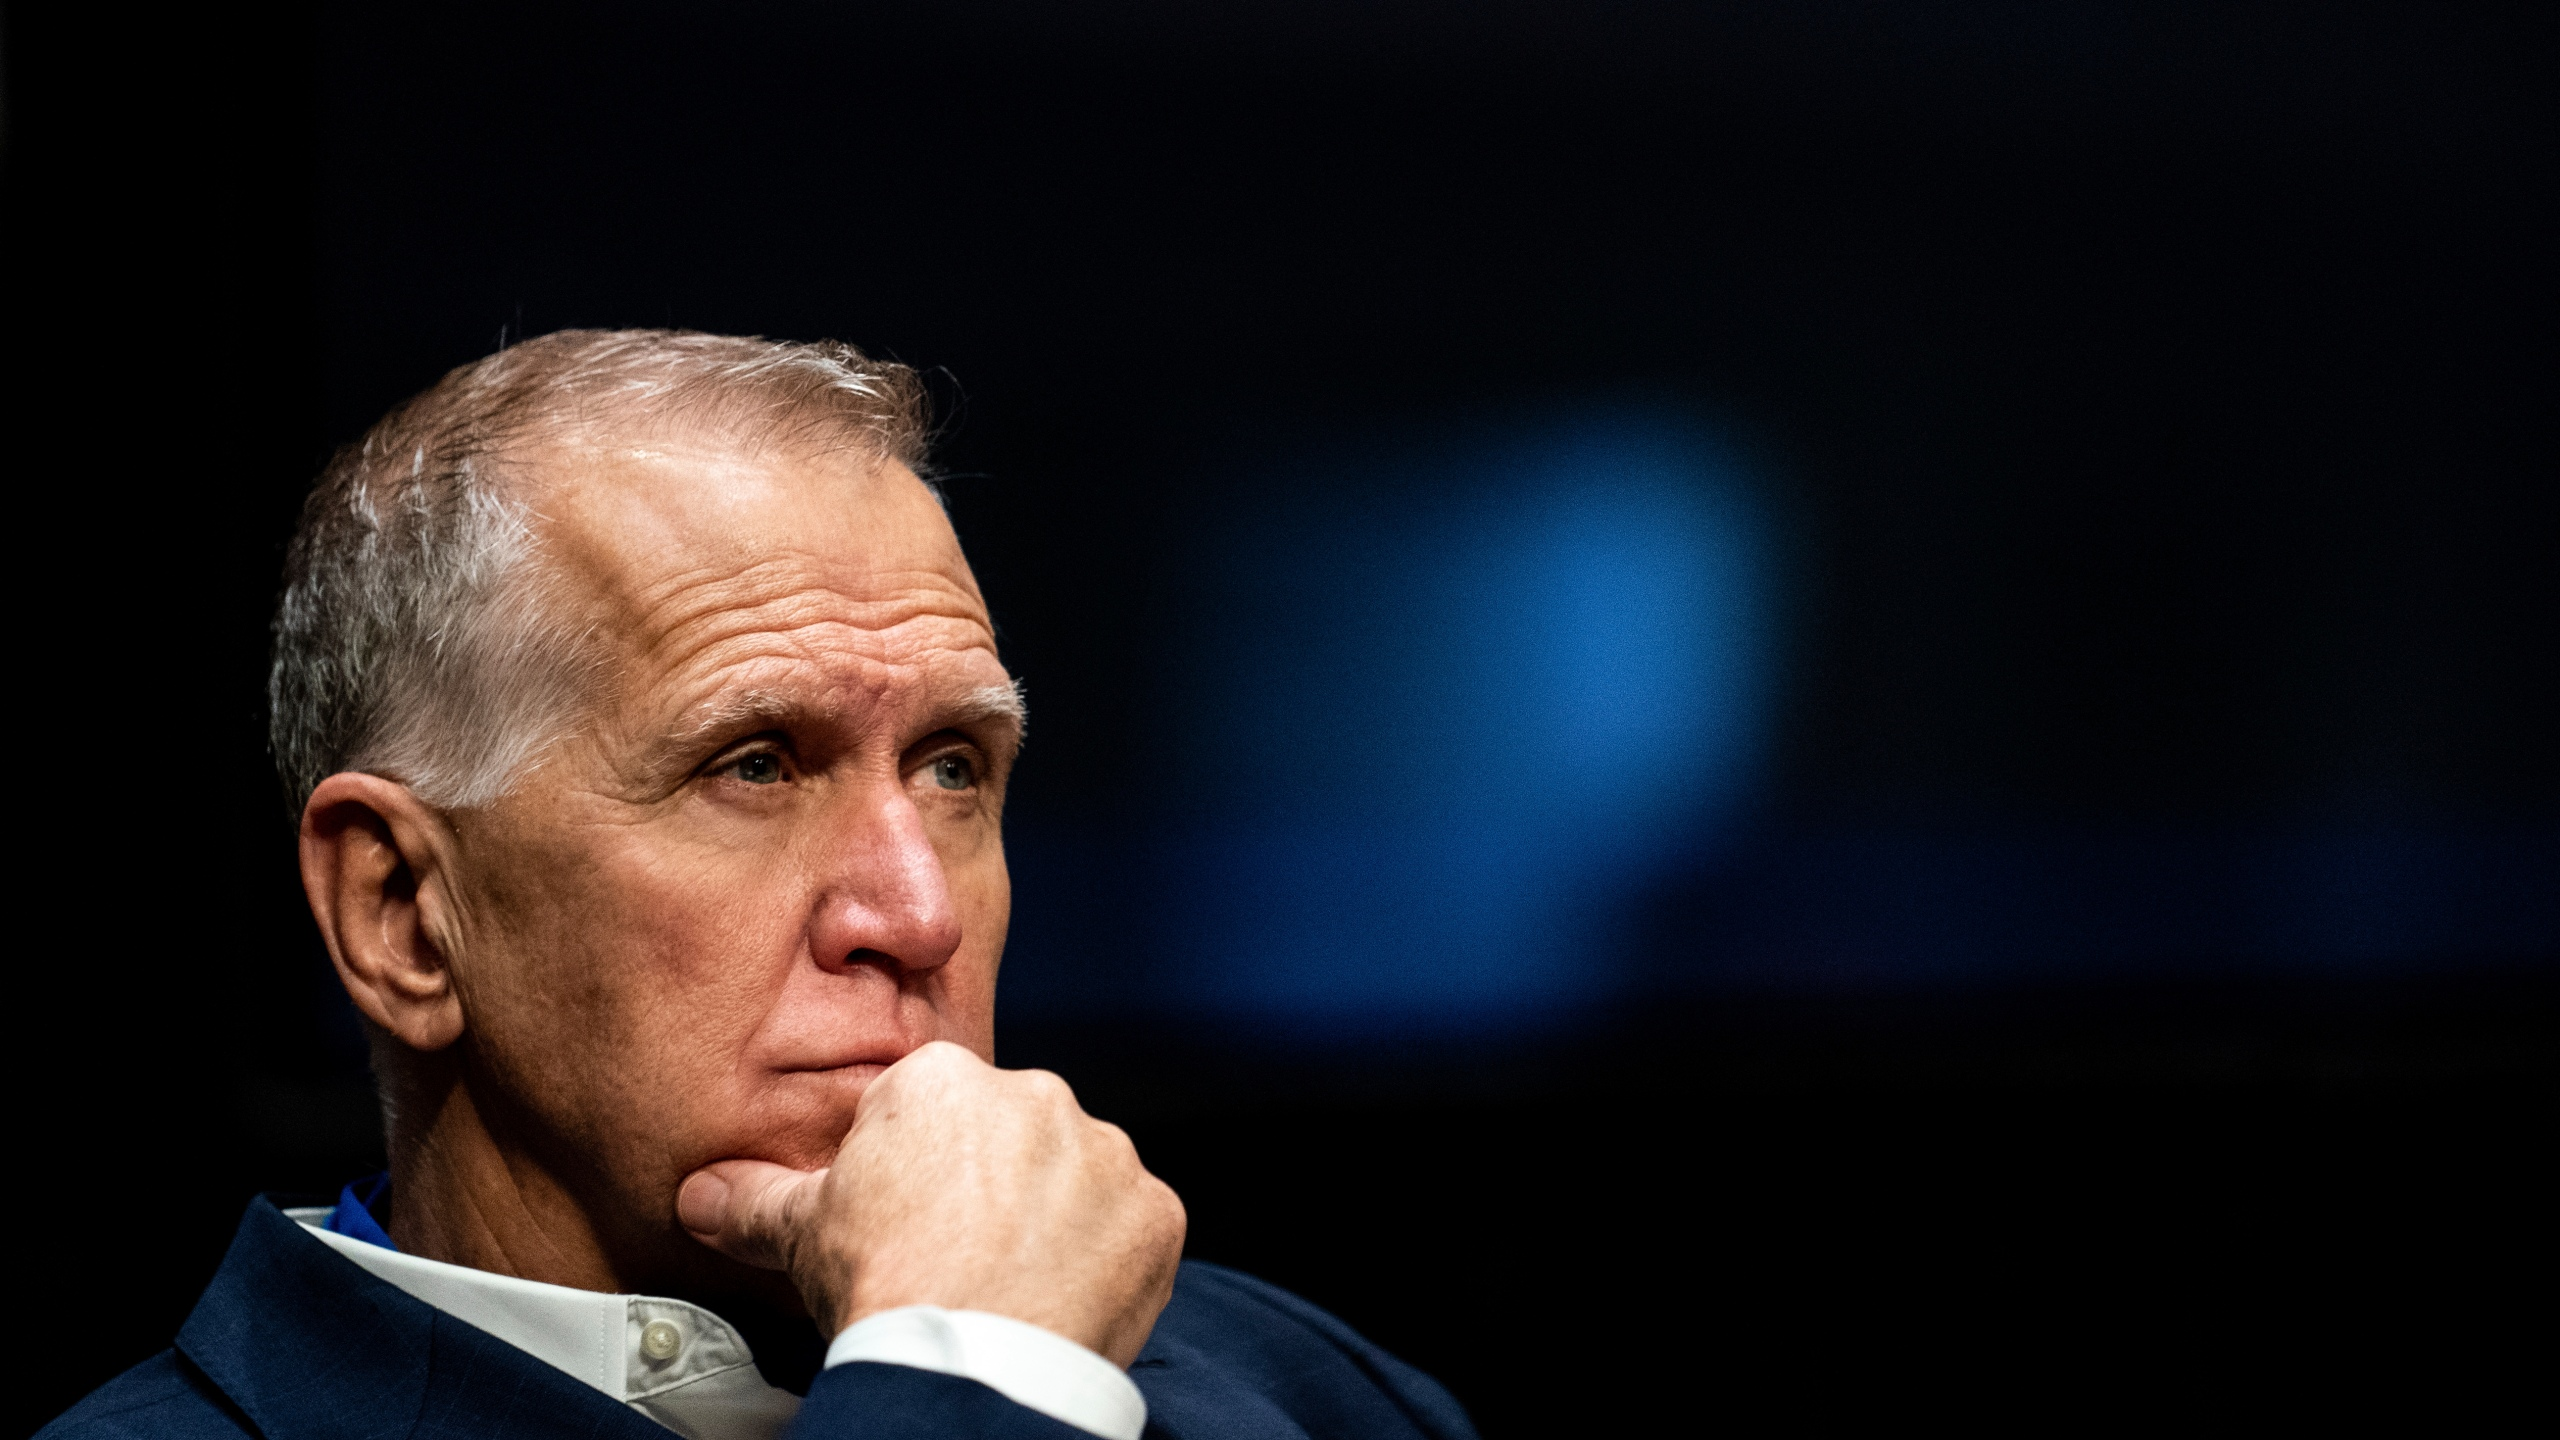 """FILE - In this June 11, 2020 file photo, Sen. Thom Tillis, R-N.C., attends a Senate Judiciary Committee business meeting to consider authorization for subpoenas relating to the Crossfire Hurricane investigation, and other matters on Capitol Hill in Washington. Tillis said on Friday, Aug. 28, he """"fell short of my own standard"""" by failing to keep his face mask on in the White House crowd while listening to President Donald Trump accept the Republican nomination.(Erin Schaff/The New York Times via AP, Pool, File)"""